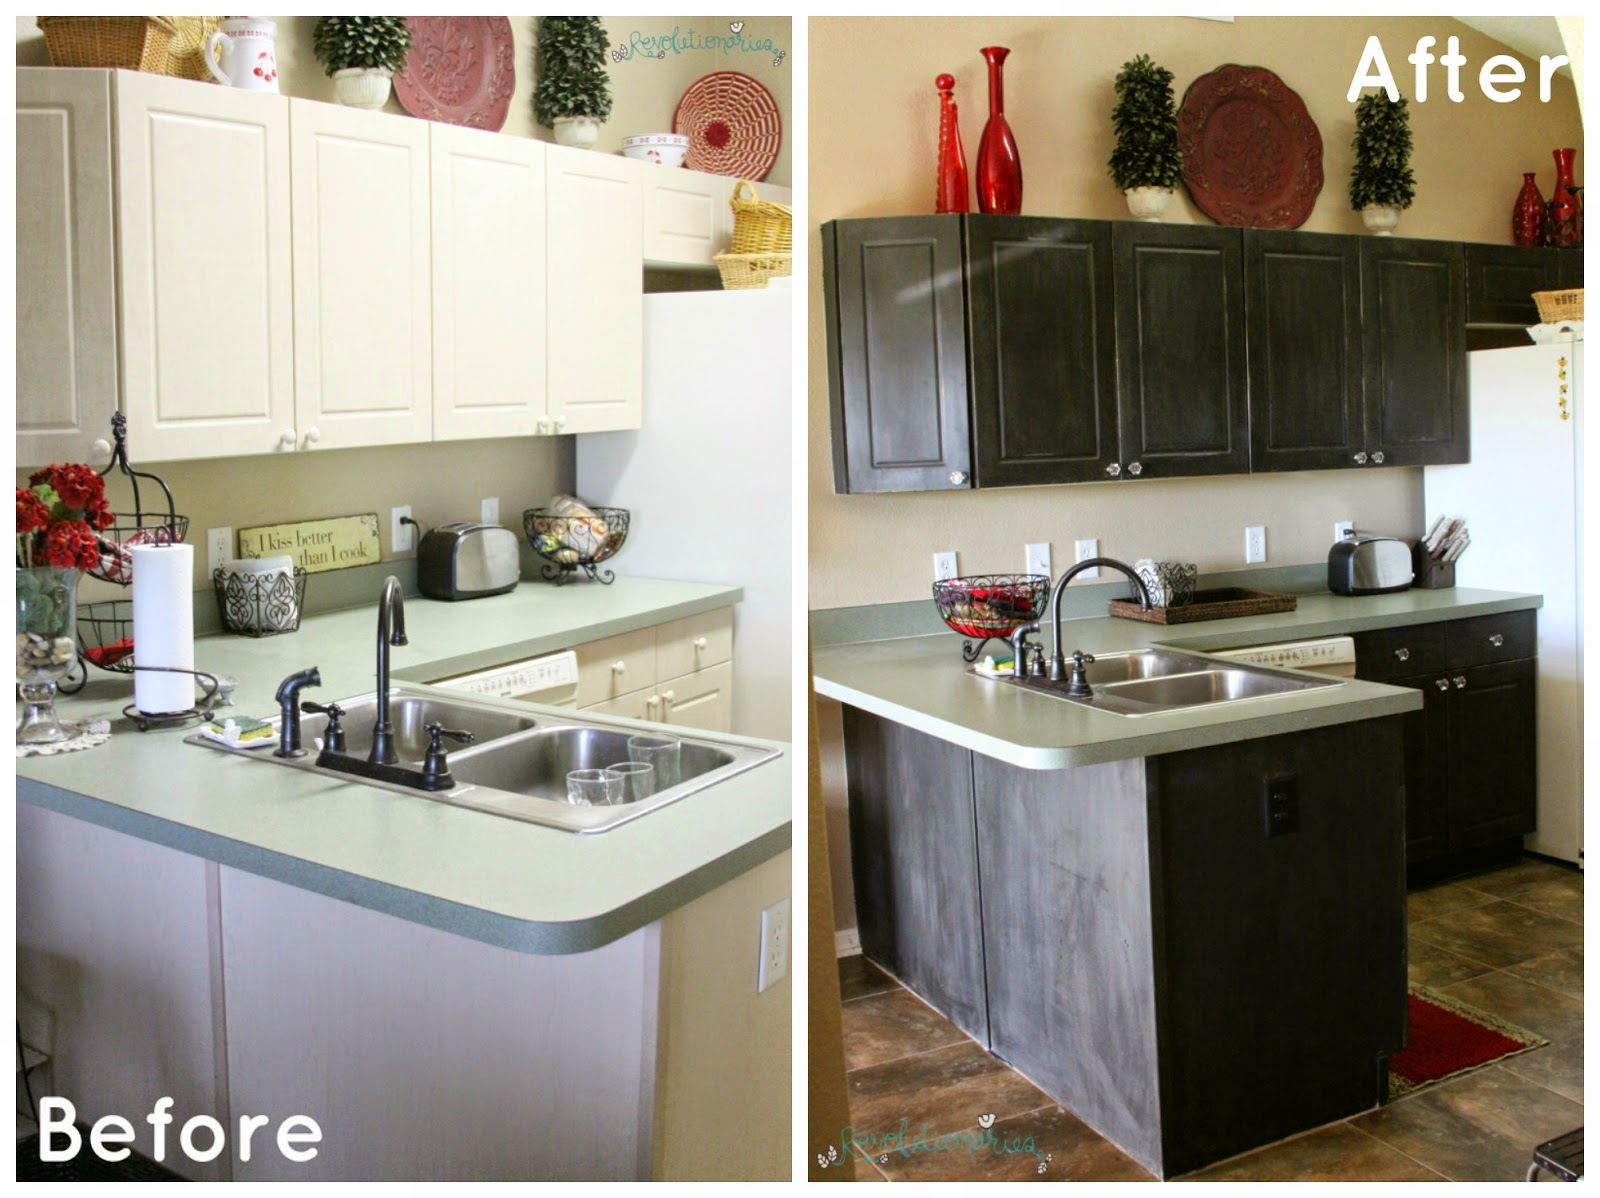 Milk Paint Vs Chalk Paint For Kitchen Cabinets